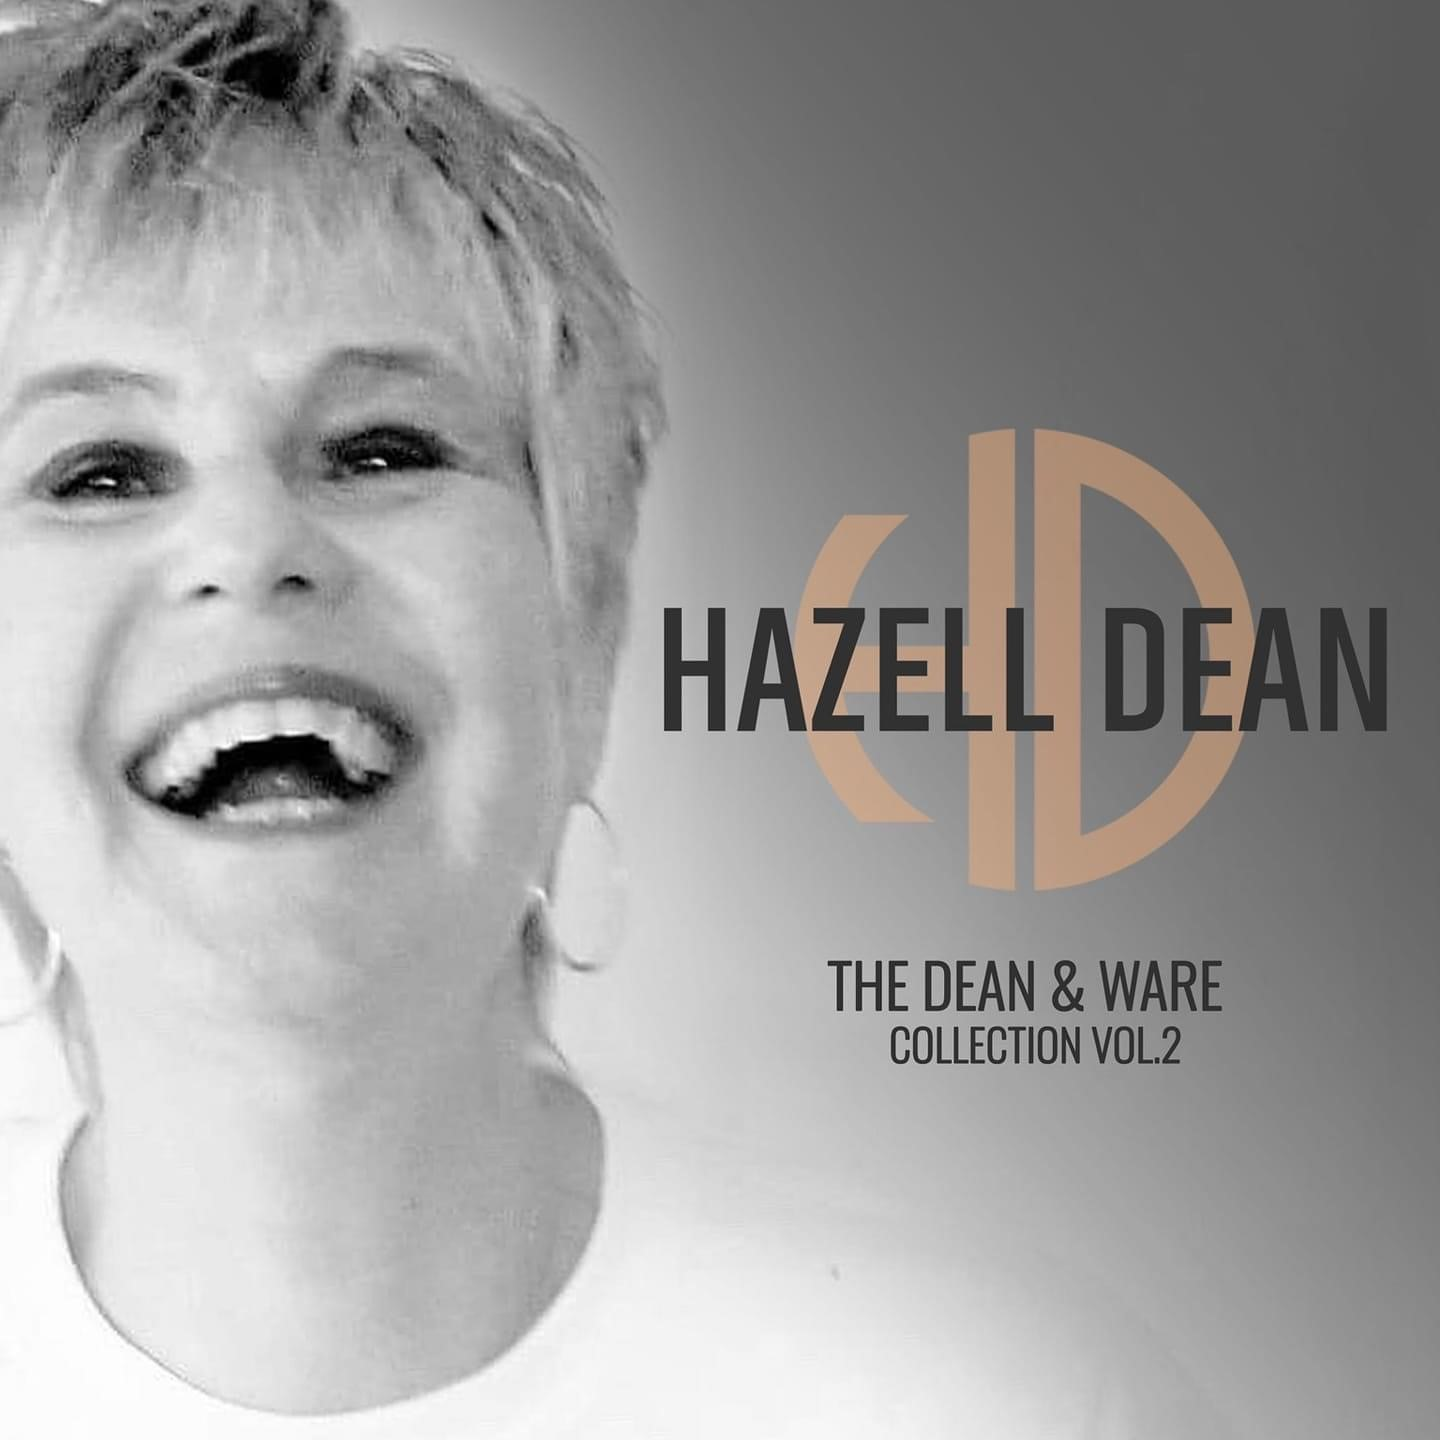 The Dean & Ware Collection Vol. 2